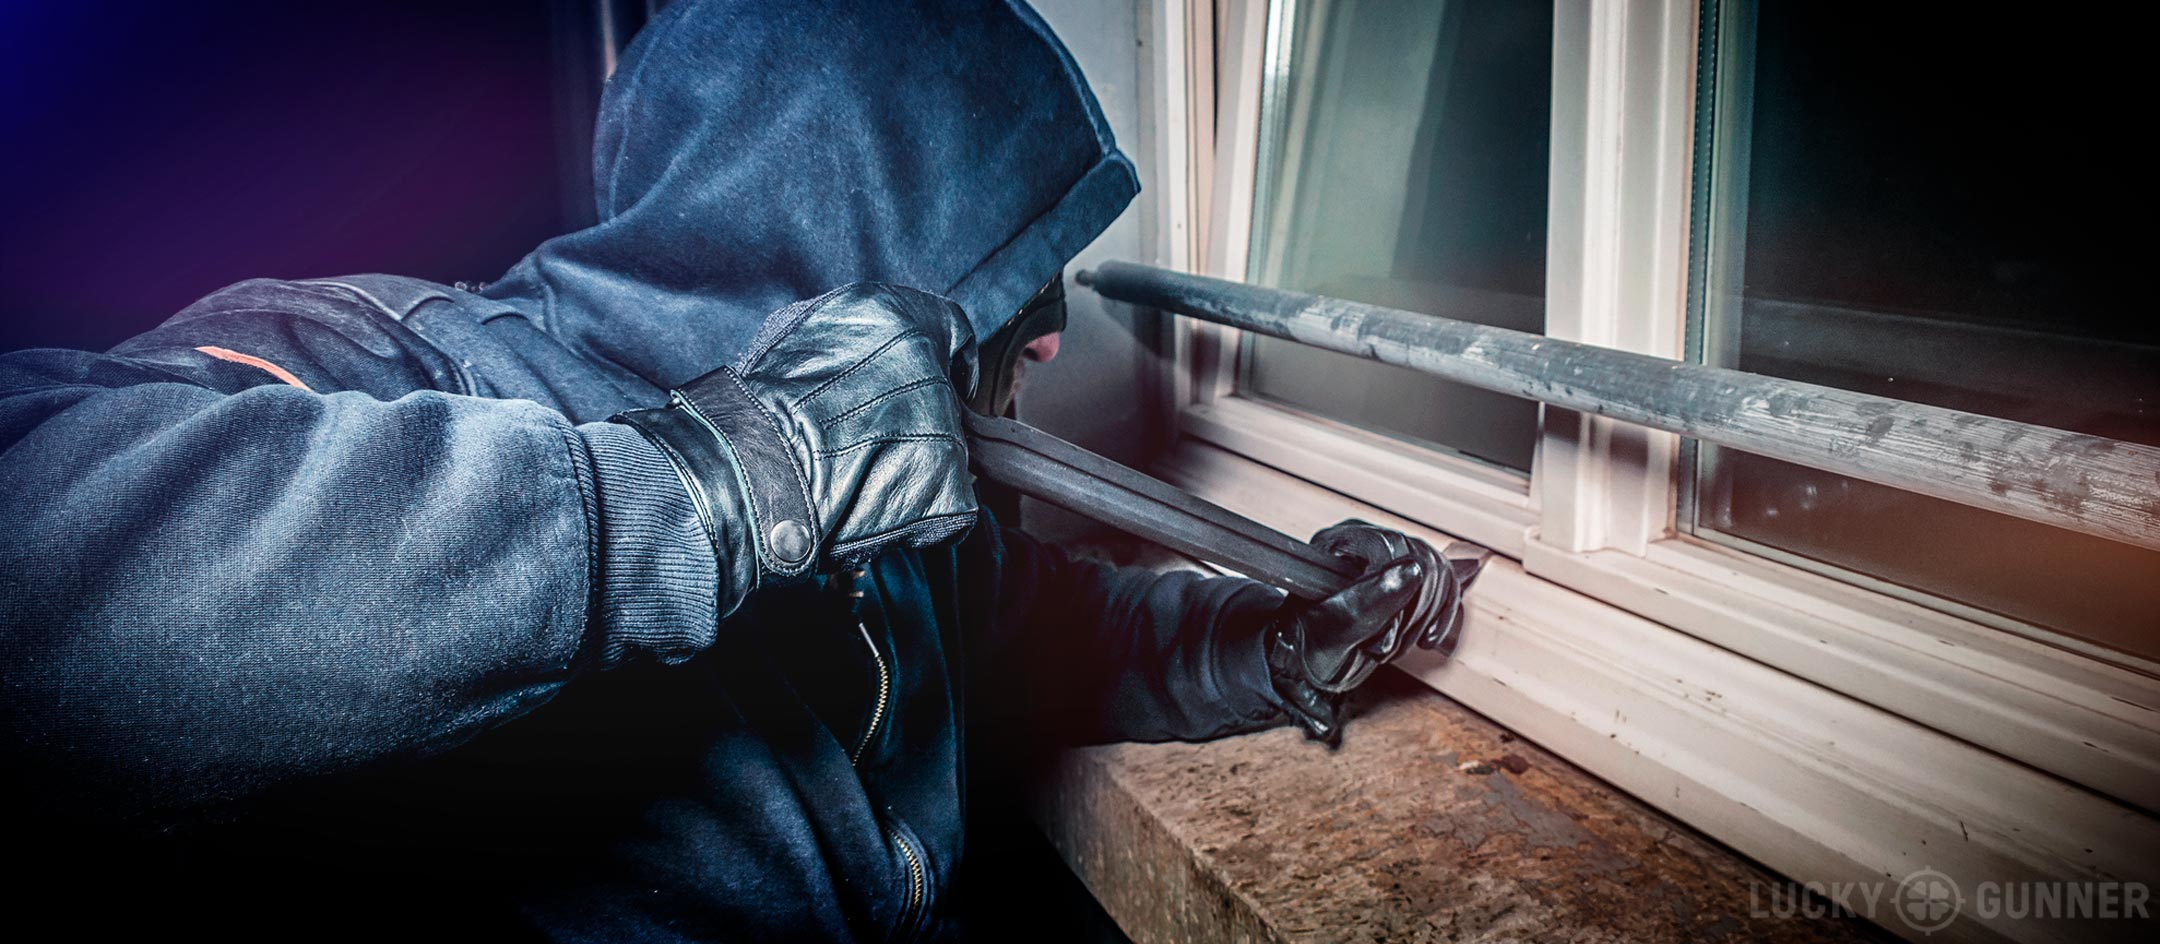 How To Prevent A Home Invasion Lucky Gunner Lounge